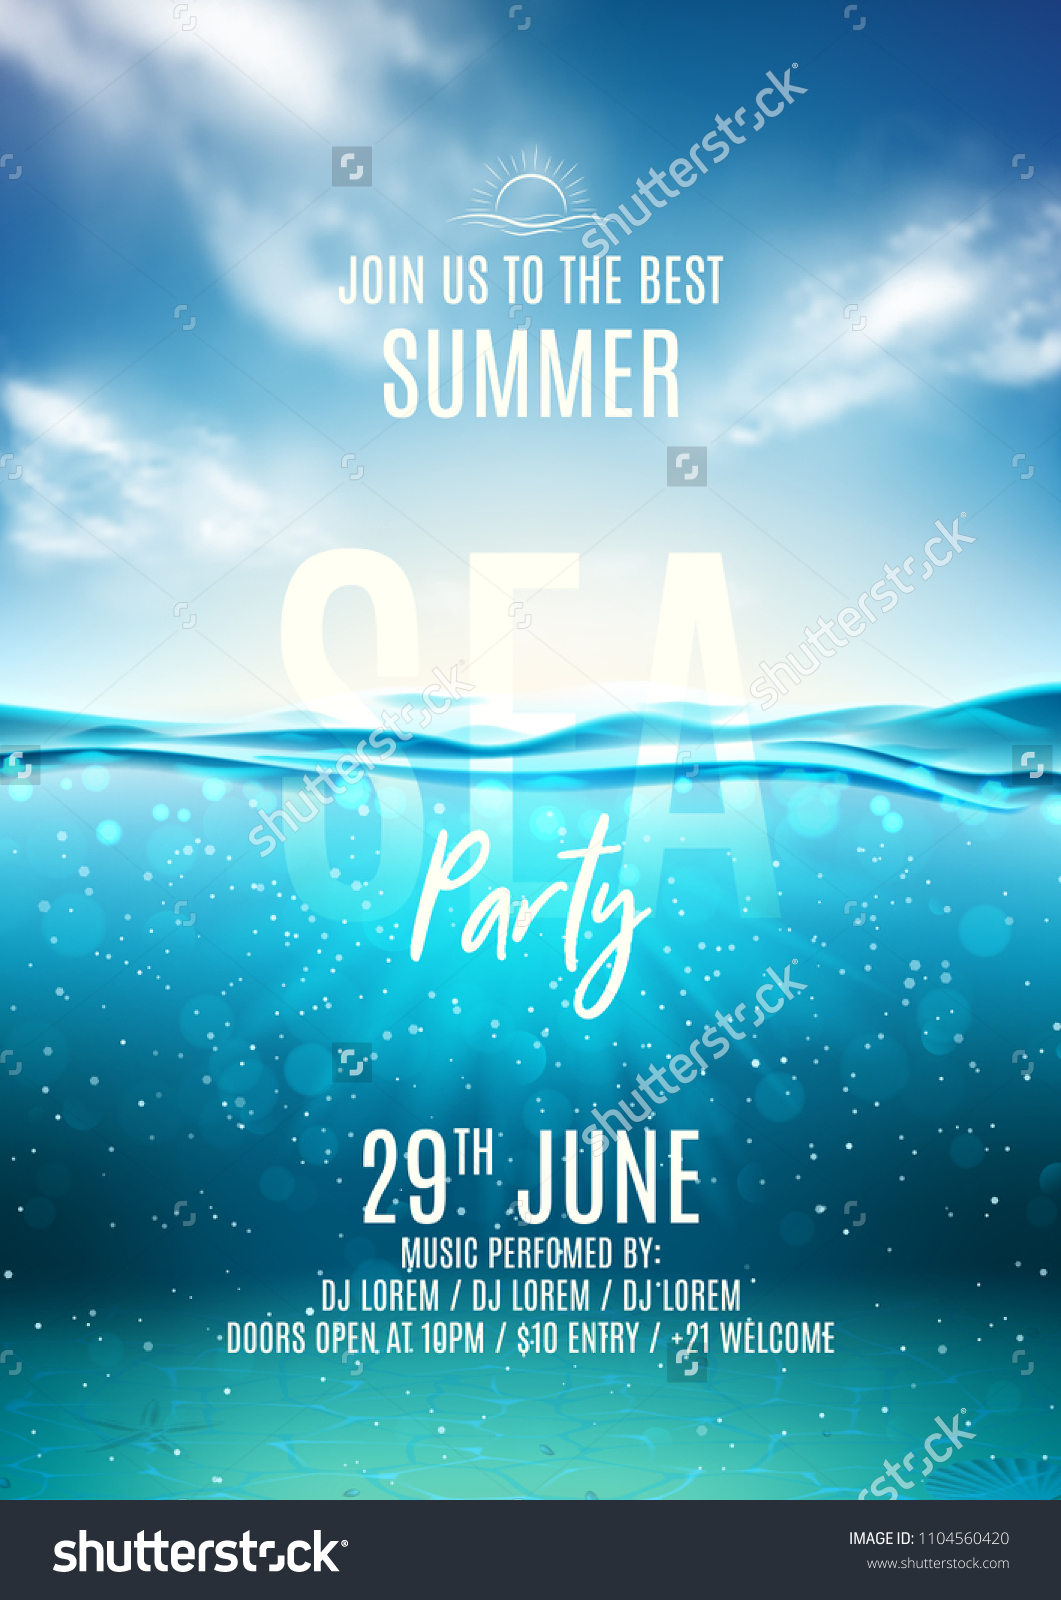 Summer sea party poster template. Vector illustration with deep underwater ocean scene. Background with realistic clouds and marine horizon. Invitation to nightclub.